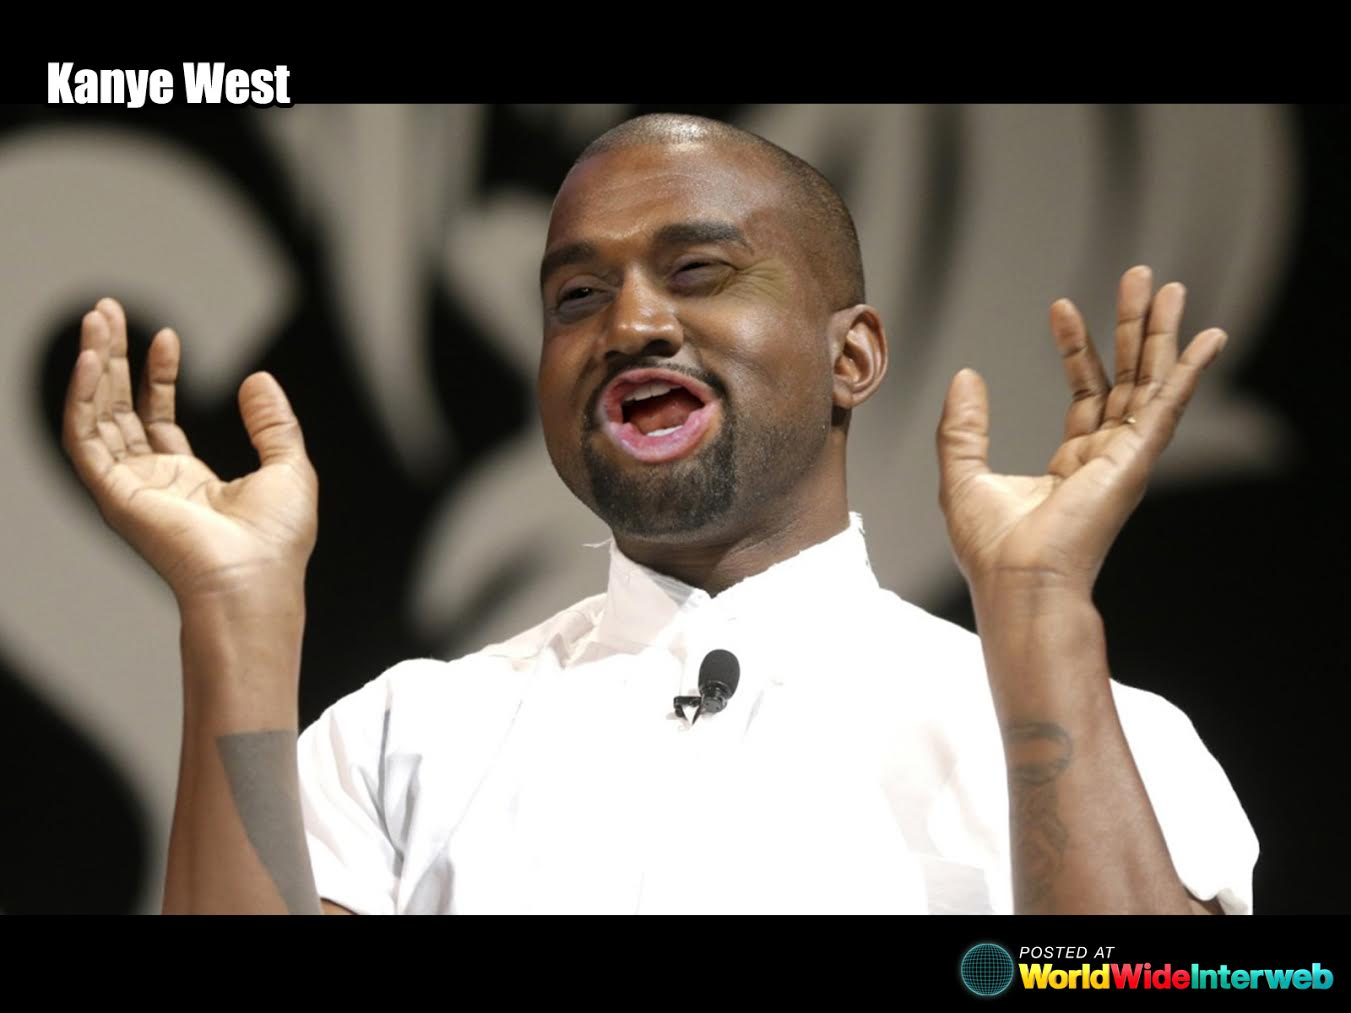 kanye west trump eyes mouth